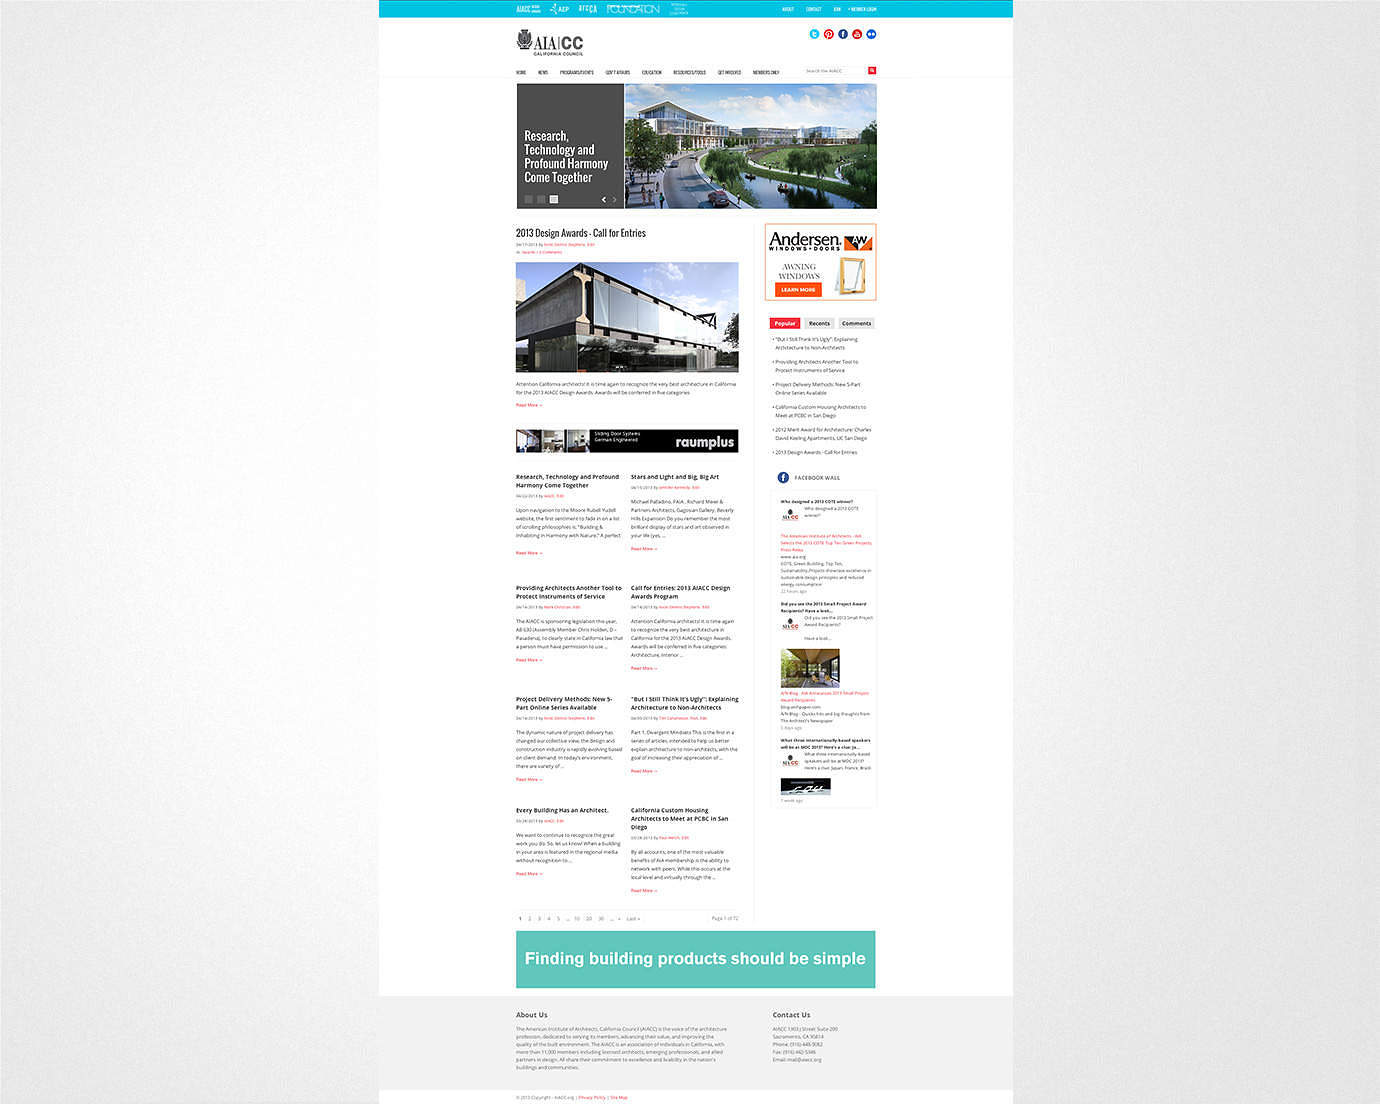 architect-architectural-california-advocacy-website-design